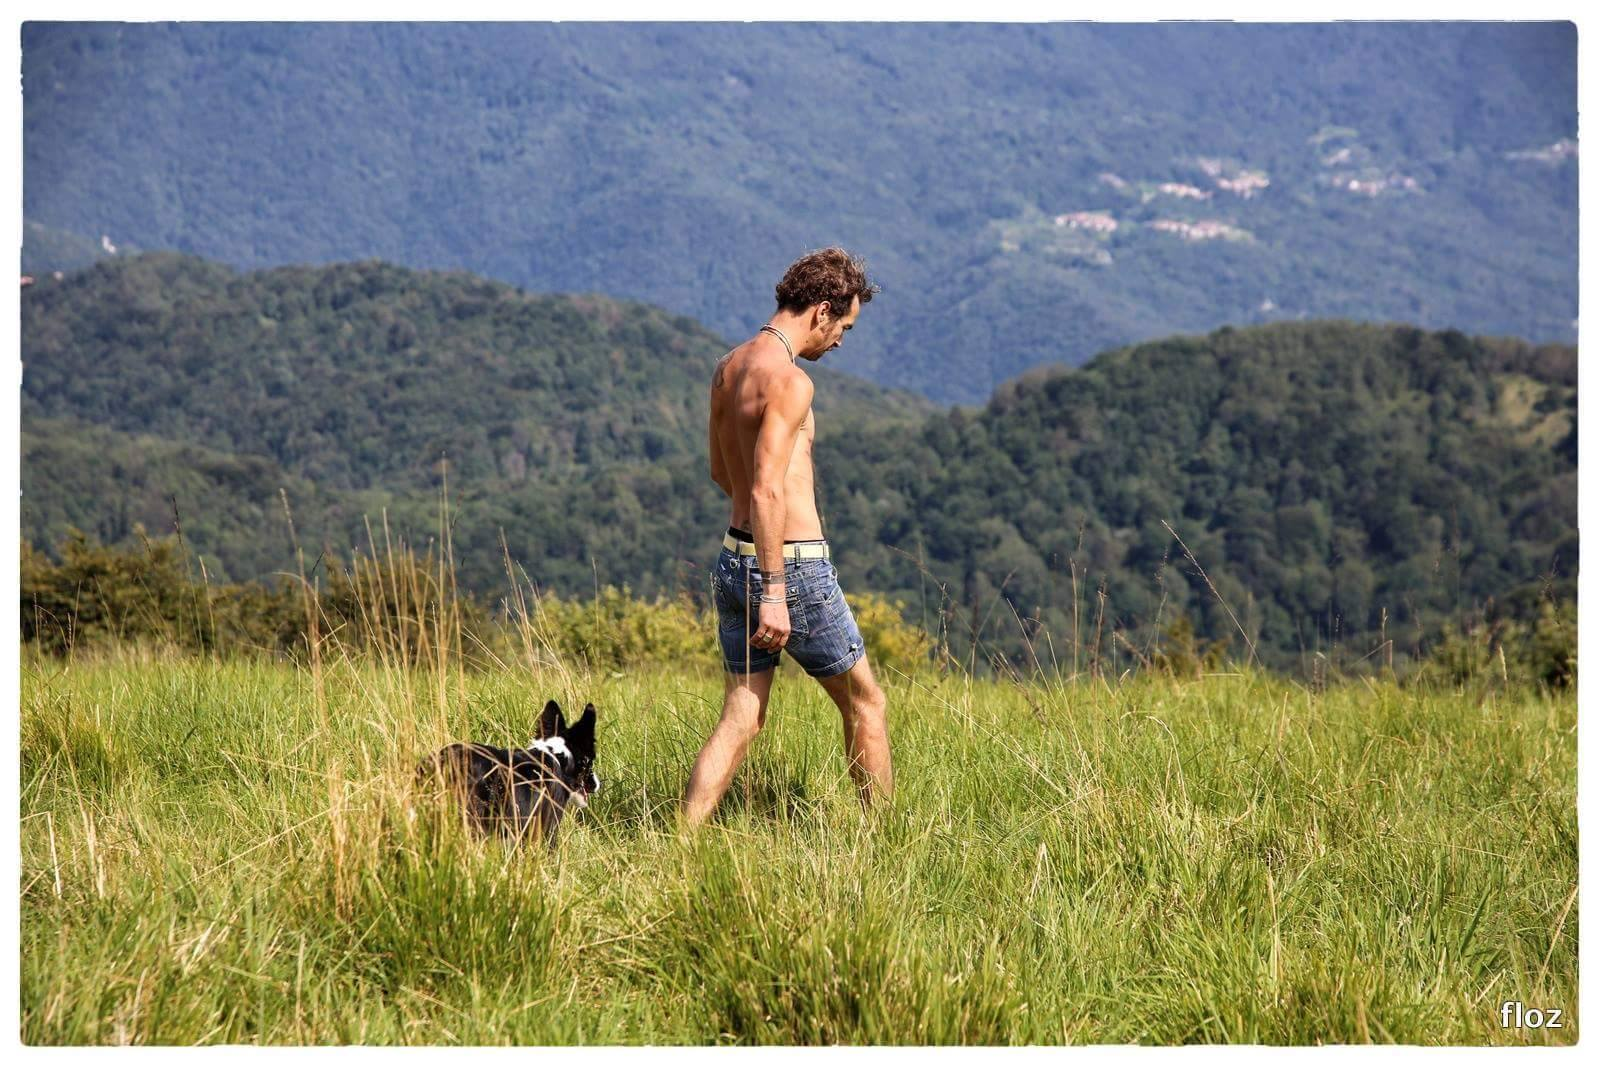 Jean François loves taking long walks in the nature with his dogs. (Image: courtesy of Florence Zumello)